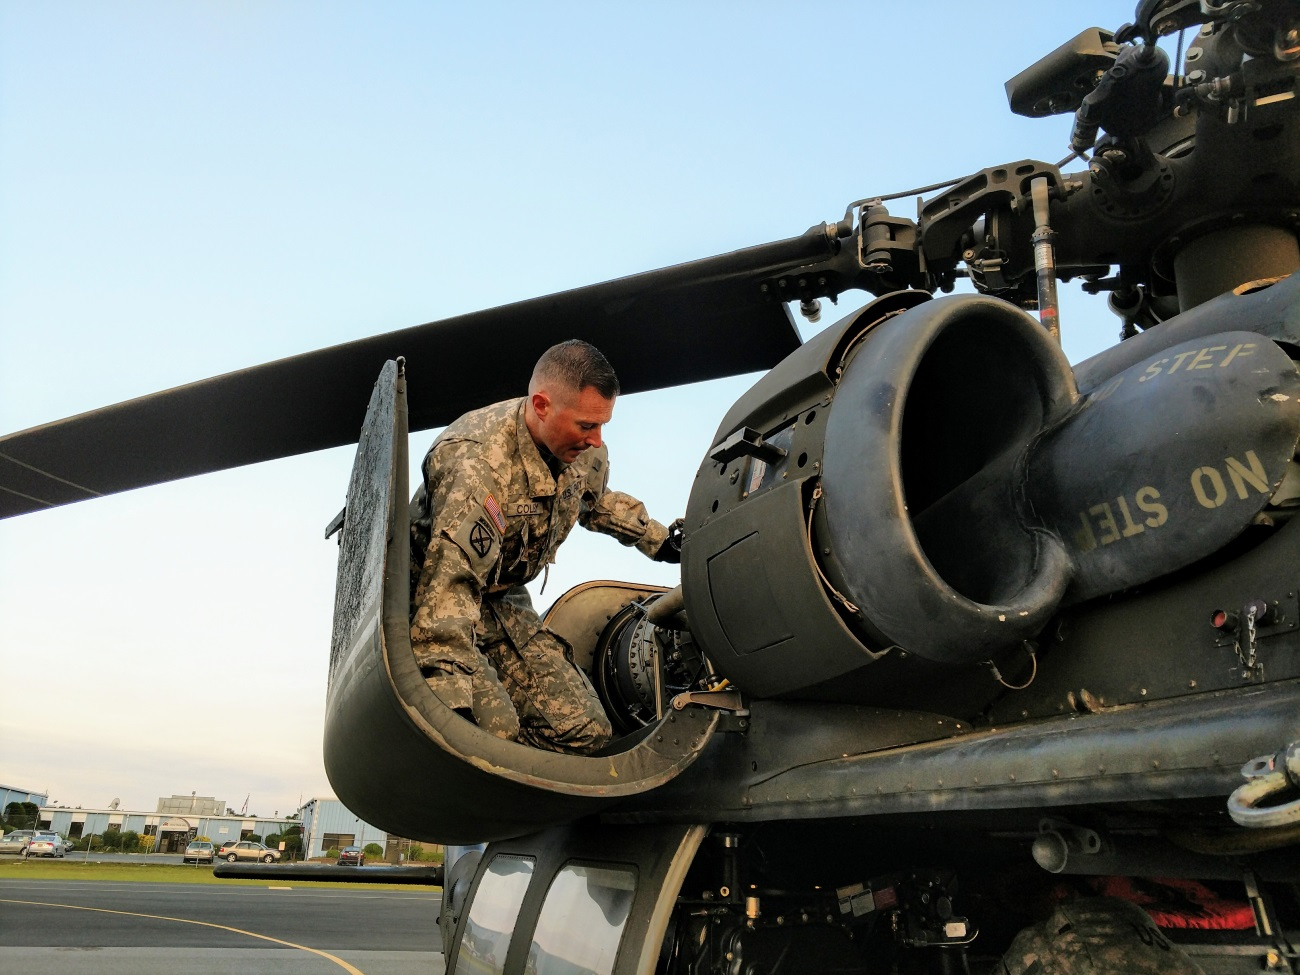 Is maintenance a thing of the past? Army Chief Warrant Officer 2 Kevin Colby conducts preflight inspections on his UH-60 Black Hawk helicopter on Sept. 11, 2017. (Capt. Mark Getman/New York National Guard)